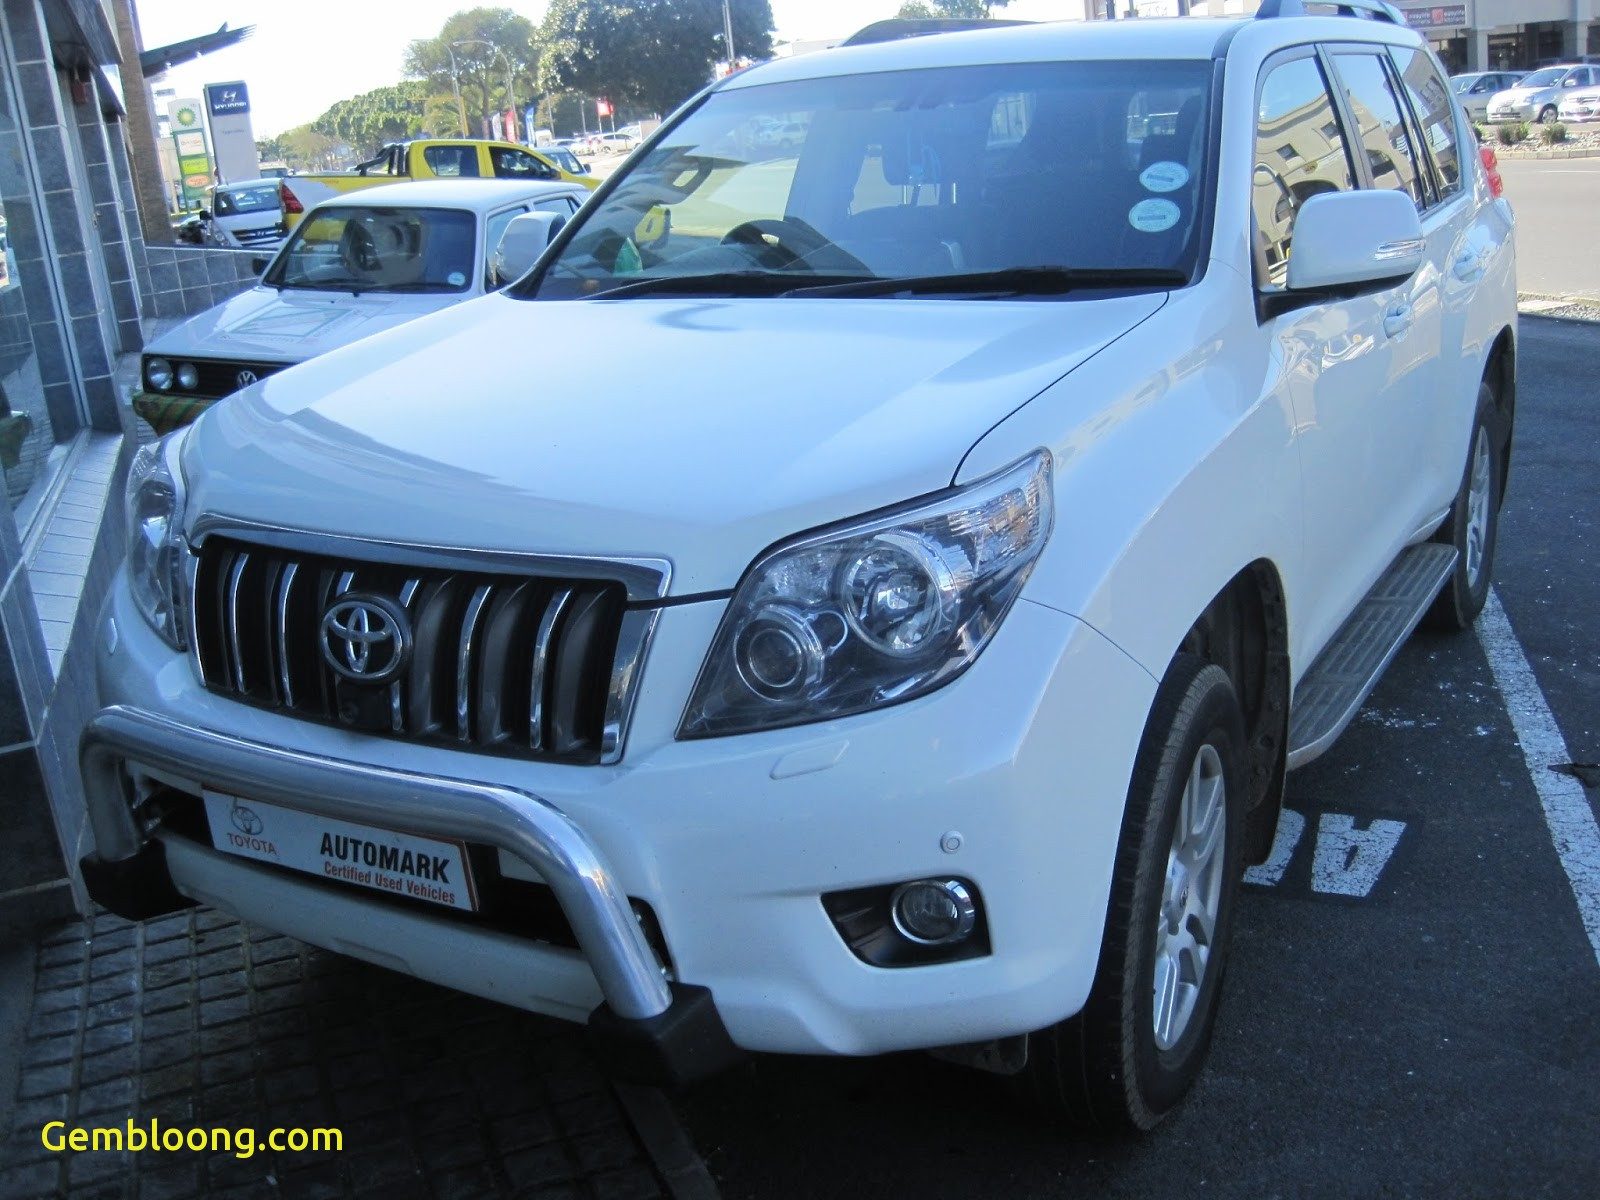 car for sale olx lovely cars for sale by gumtree elegant gumtree olx cars and bakkies